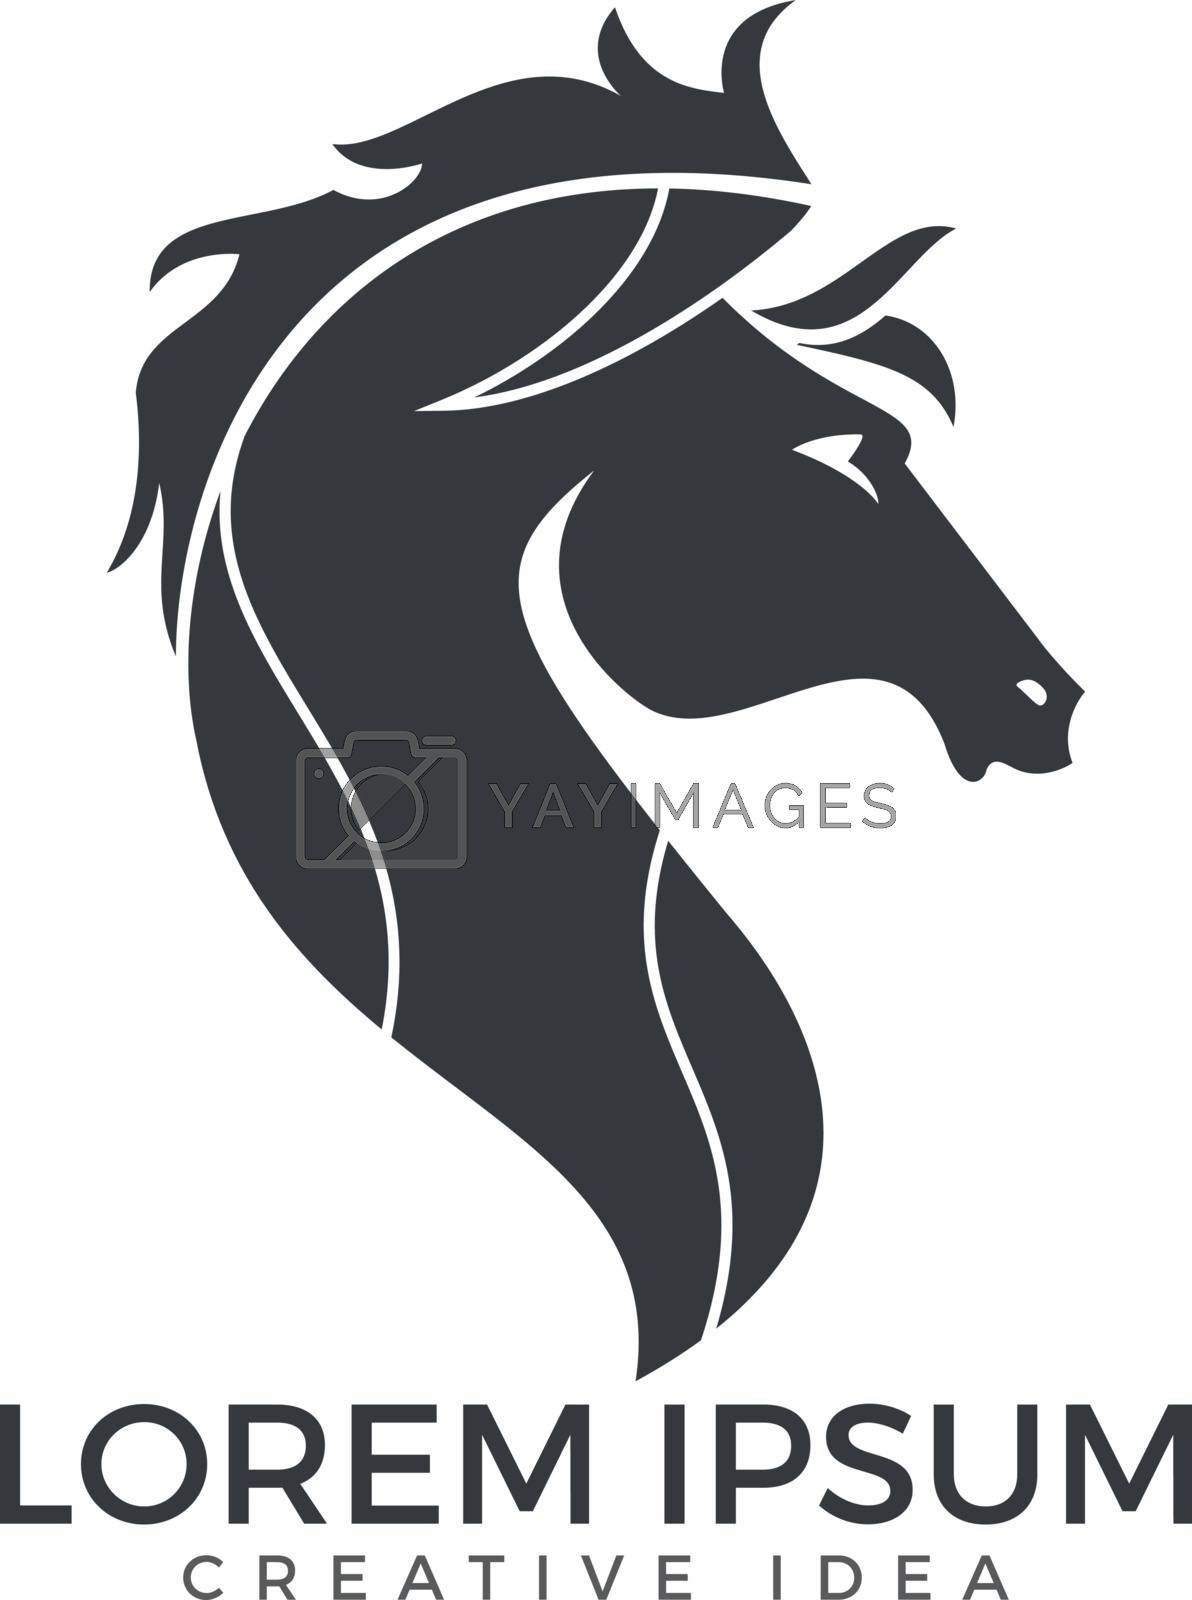 Horse Logo Design Royalty Free Stock Image Stock Photos Royalty Free Images Vectors Footage Yayimages